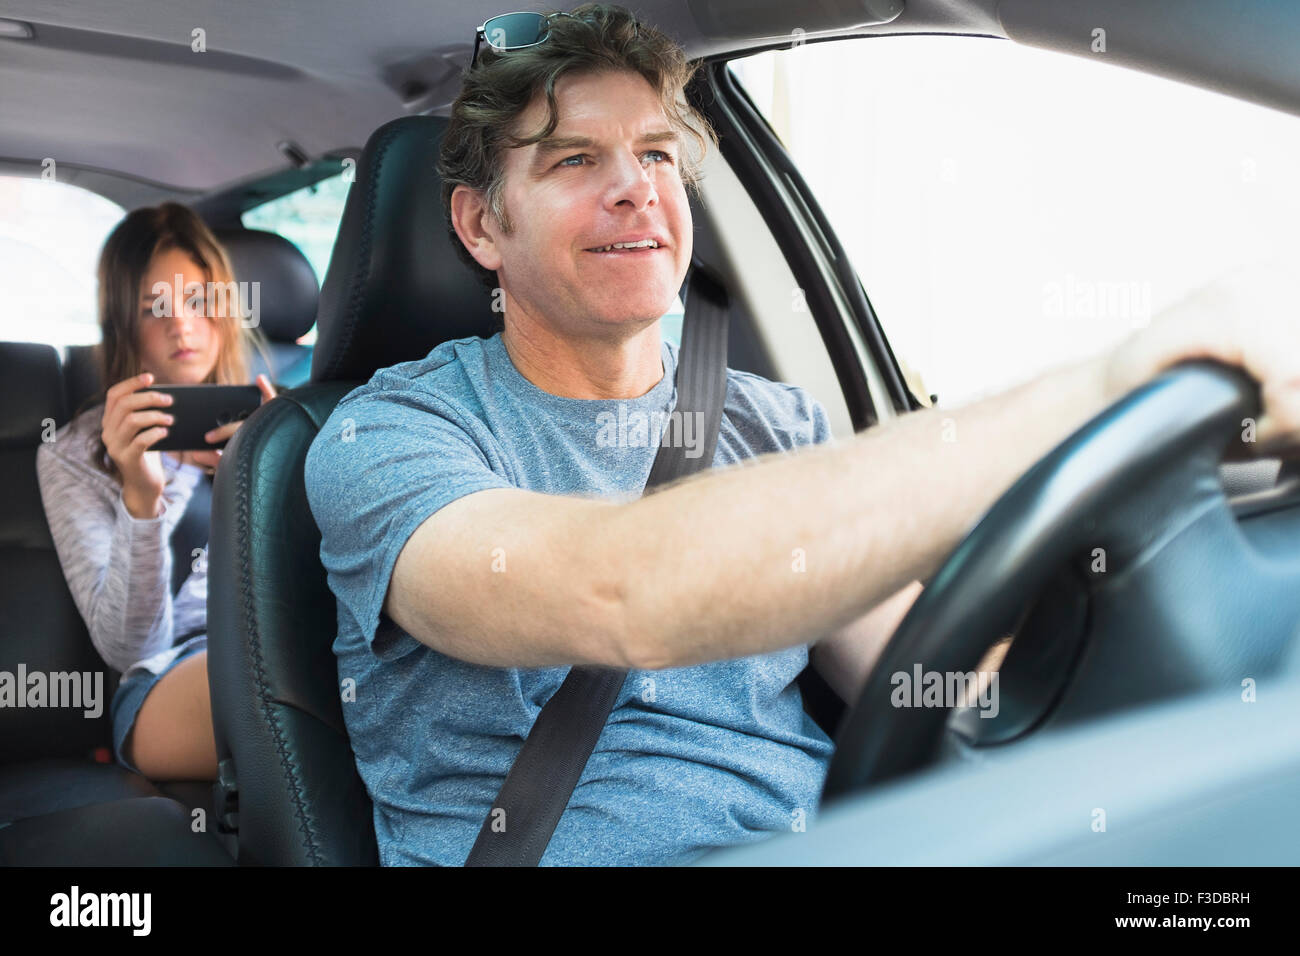 Man driving car, girl (10-11) texting in background - Stock Image